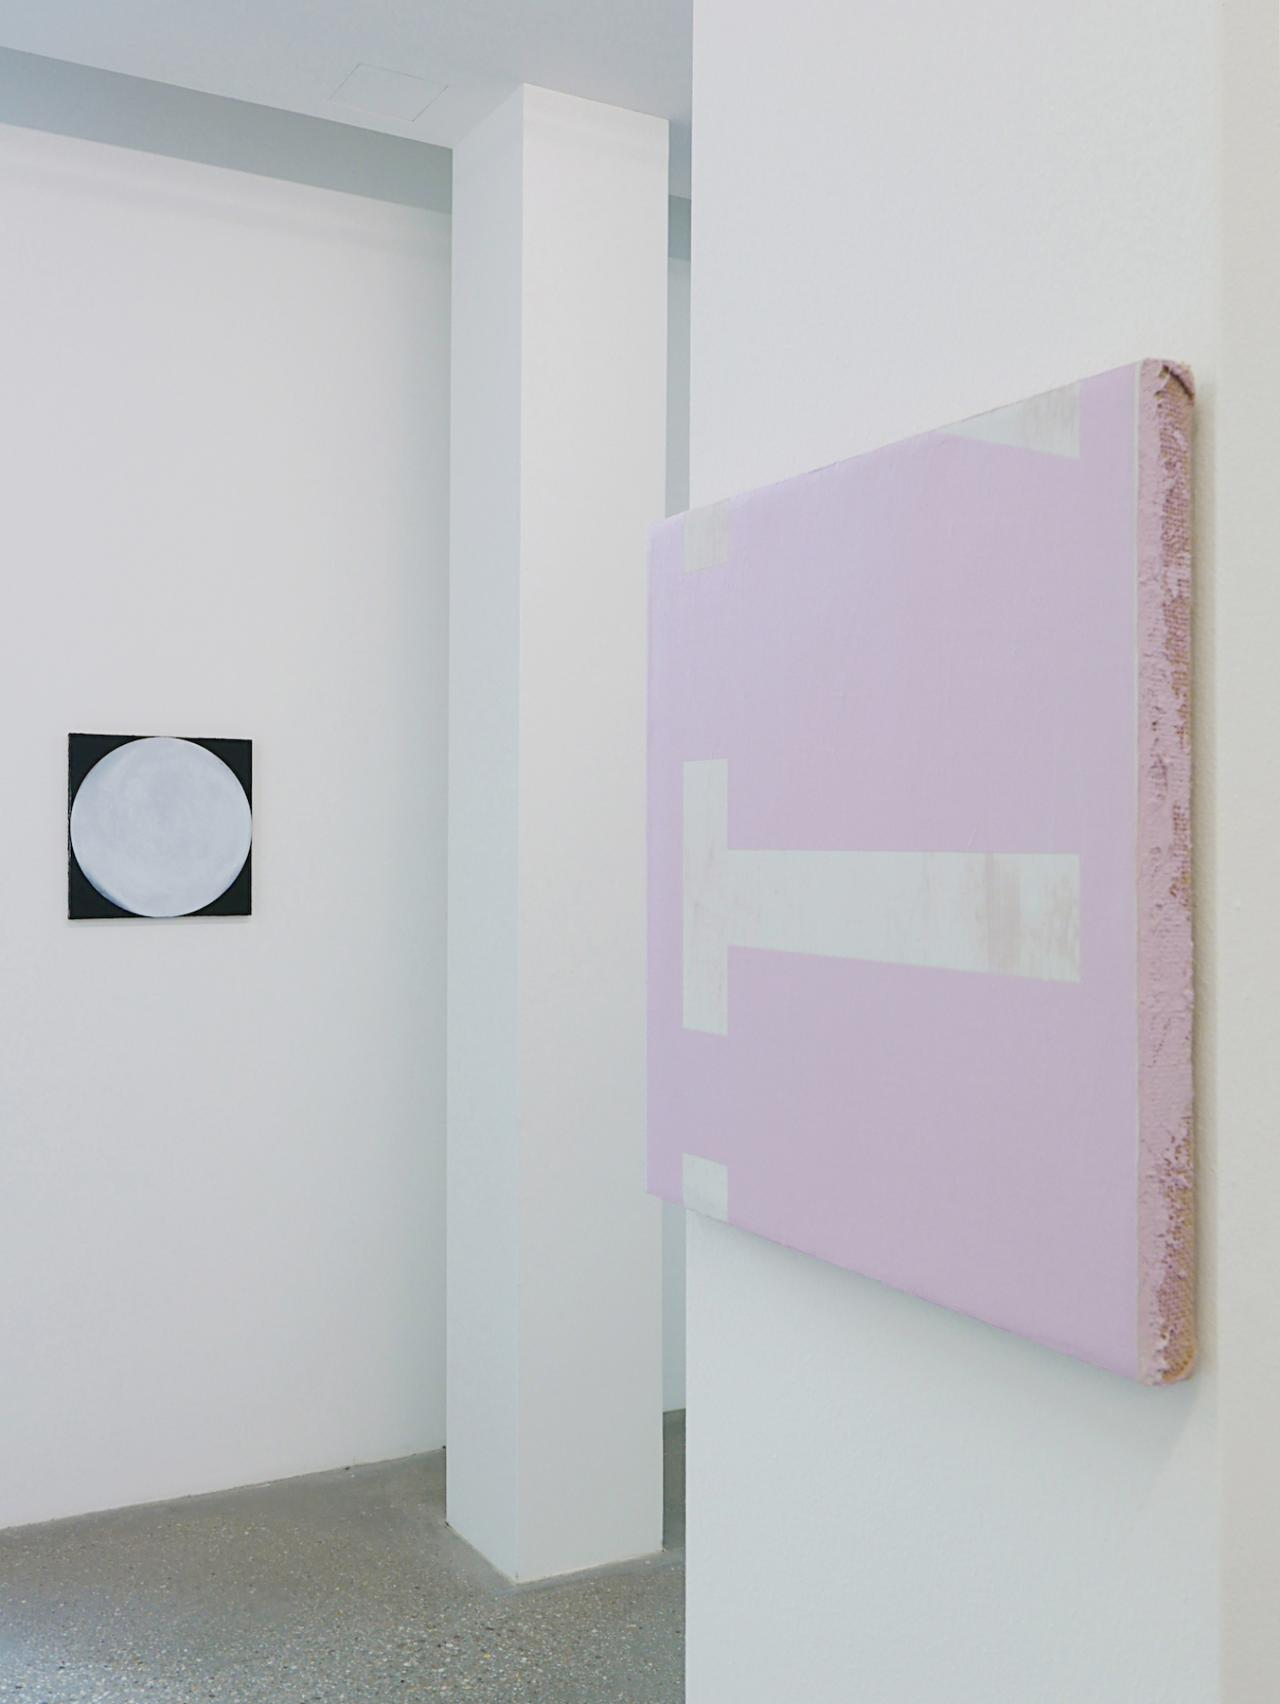 """Nicolas Jasmin and Other Works"" Exhibition view at Belvedere 21 Left: O.T. (FULL #5) , 2018 Right: O.T. #38 (VTTZ) GEHEIMSPRACHE ROSA , 2018 Courtesy the artist and Croy Nielsen, Vienna"